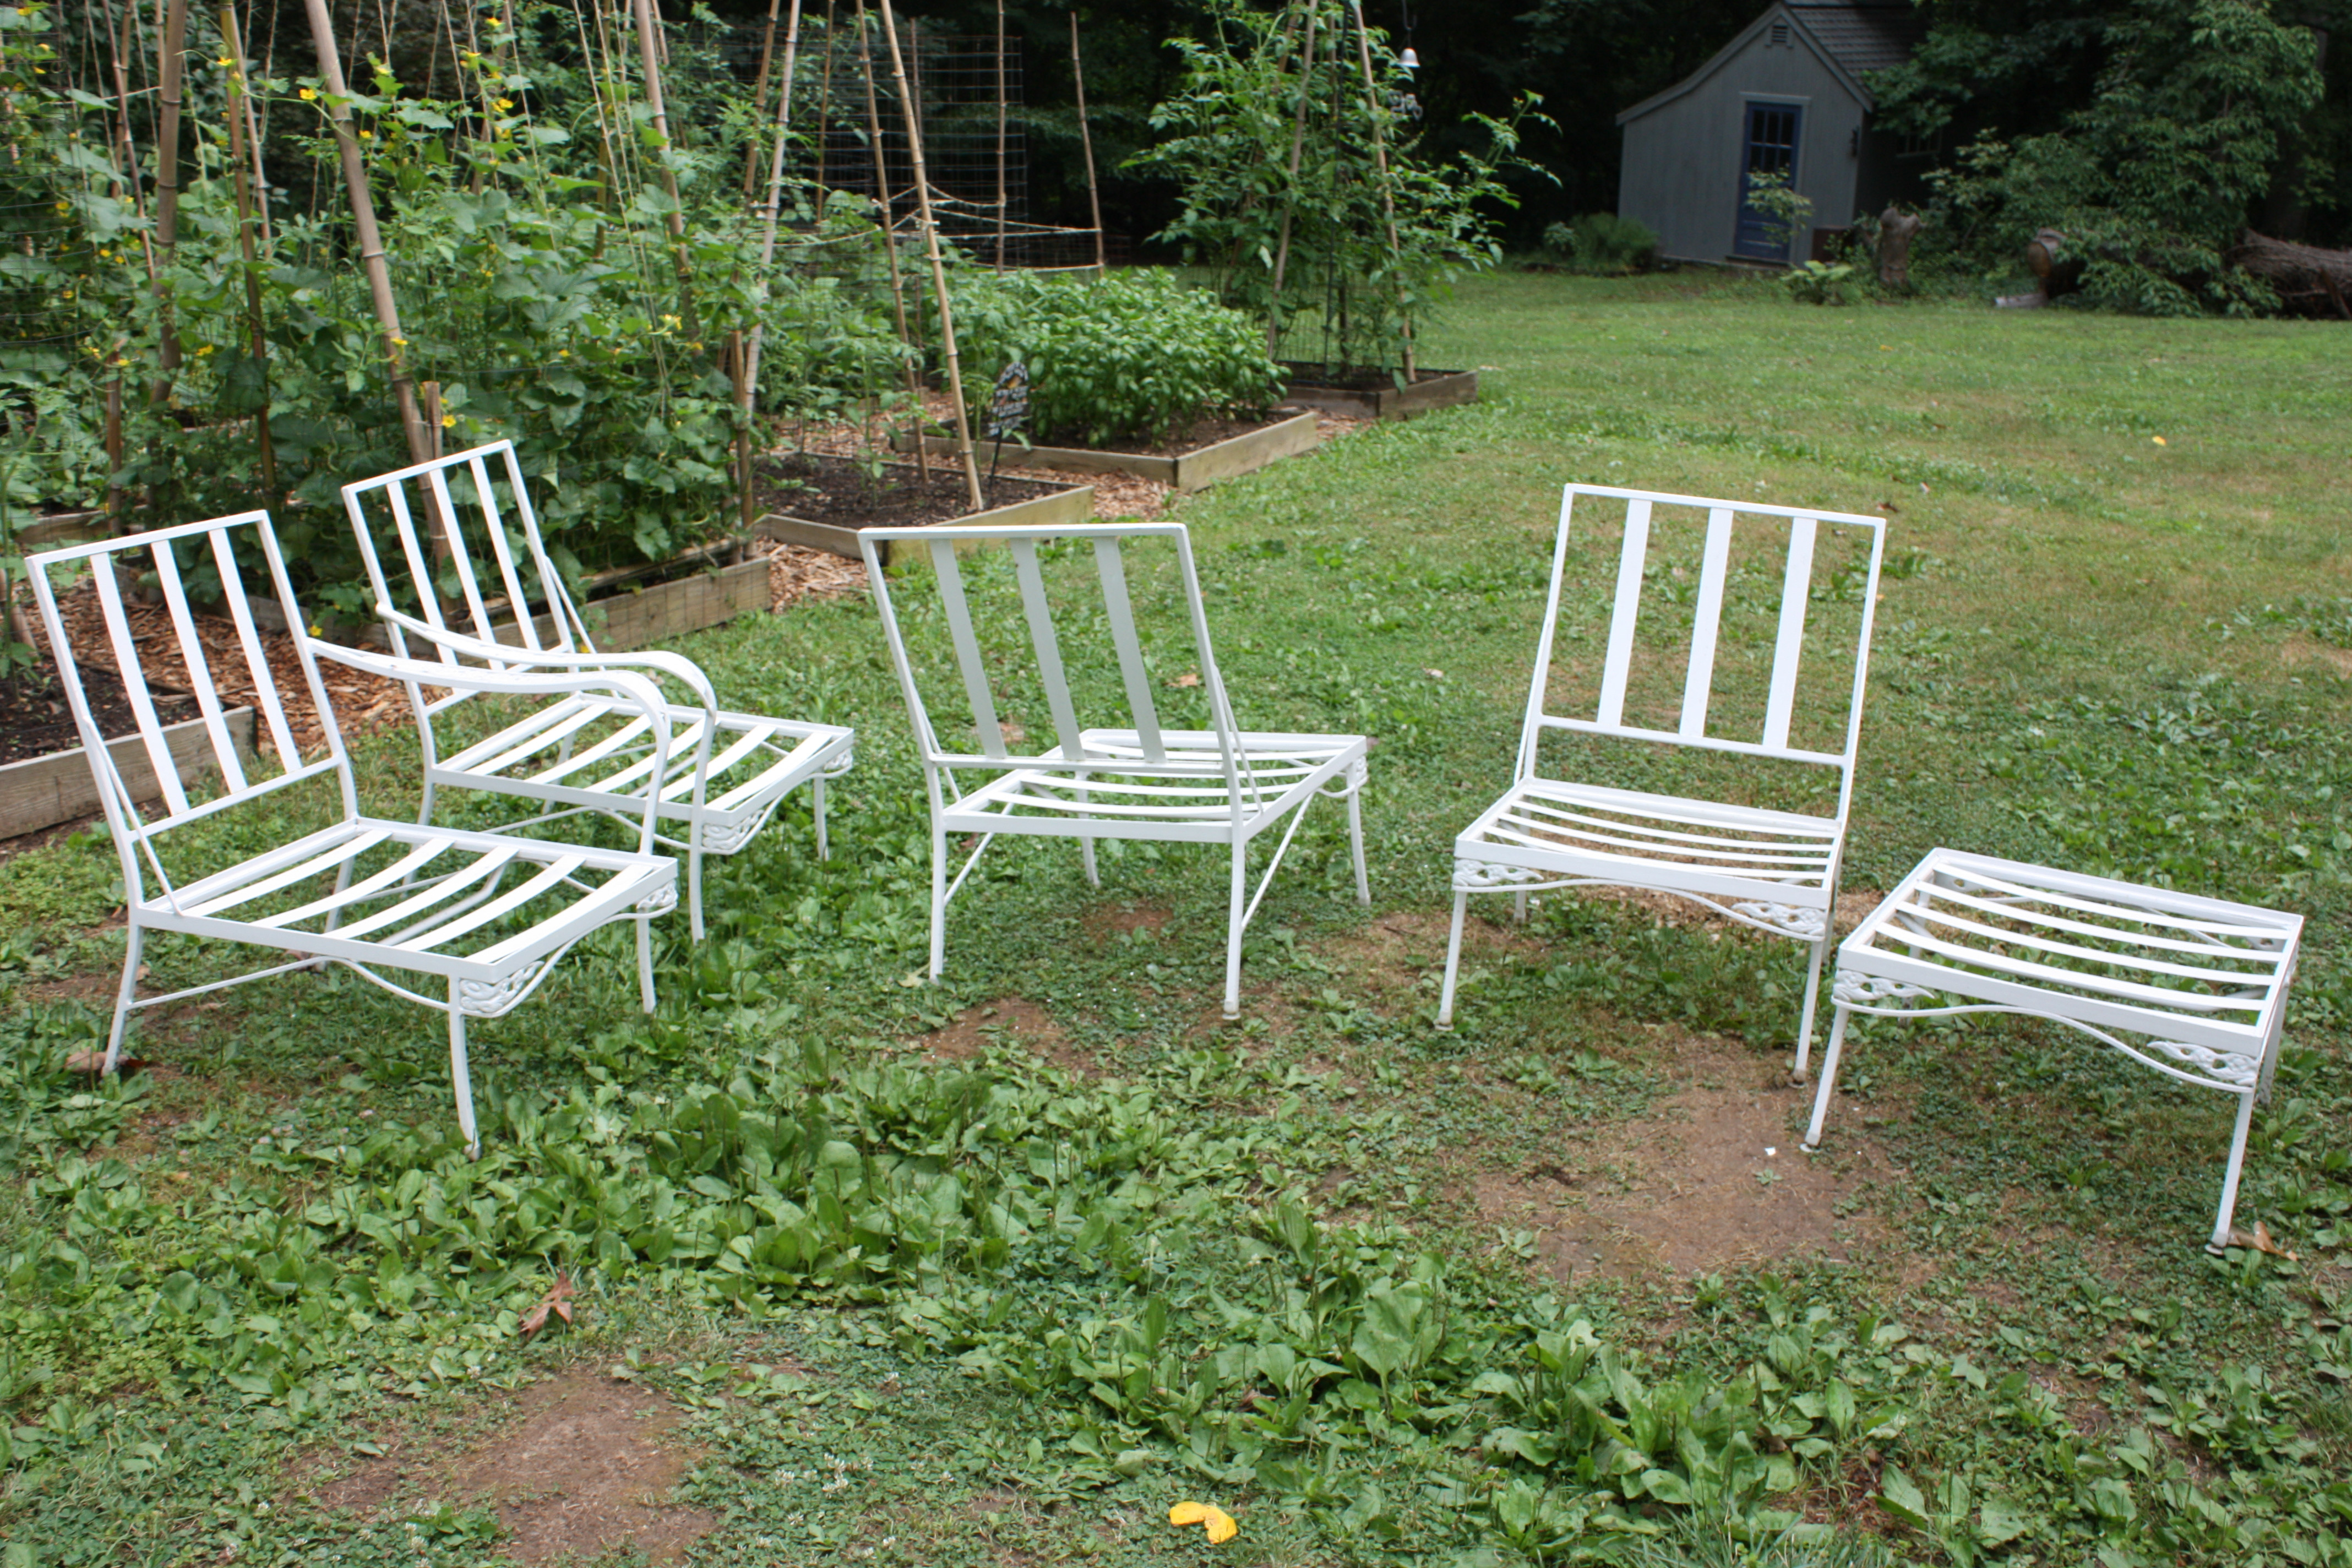 Best ideas about Retro Patio Furniture . Save or Pin Vintage Patio Furniture – Let s Face the Music Now.